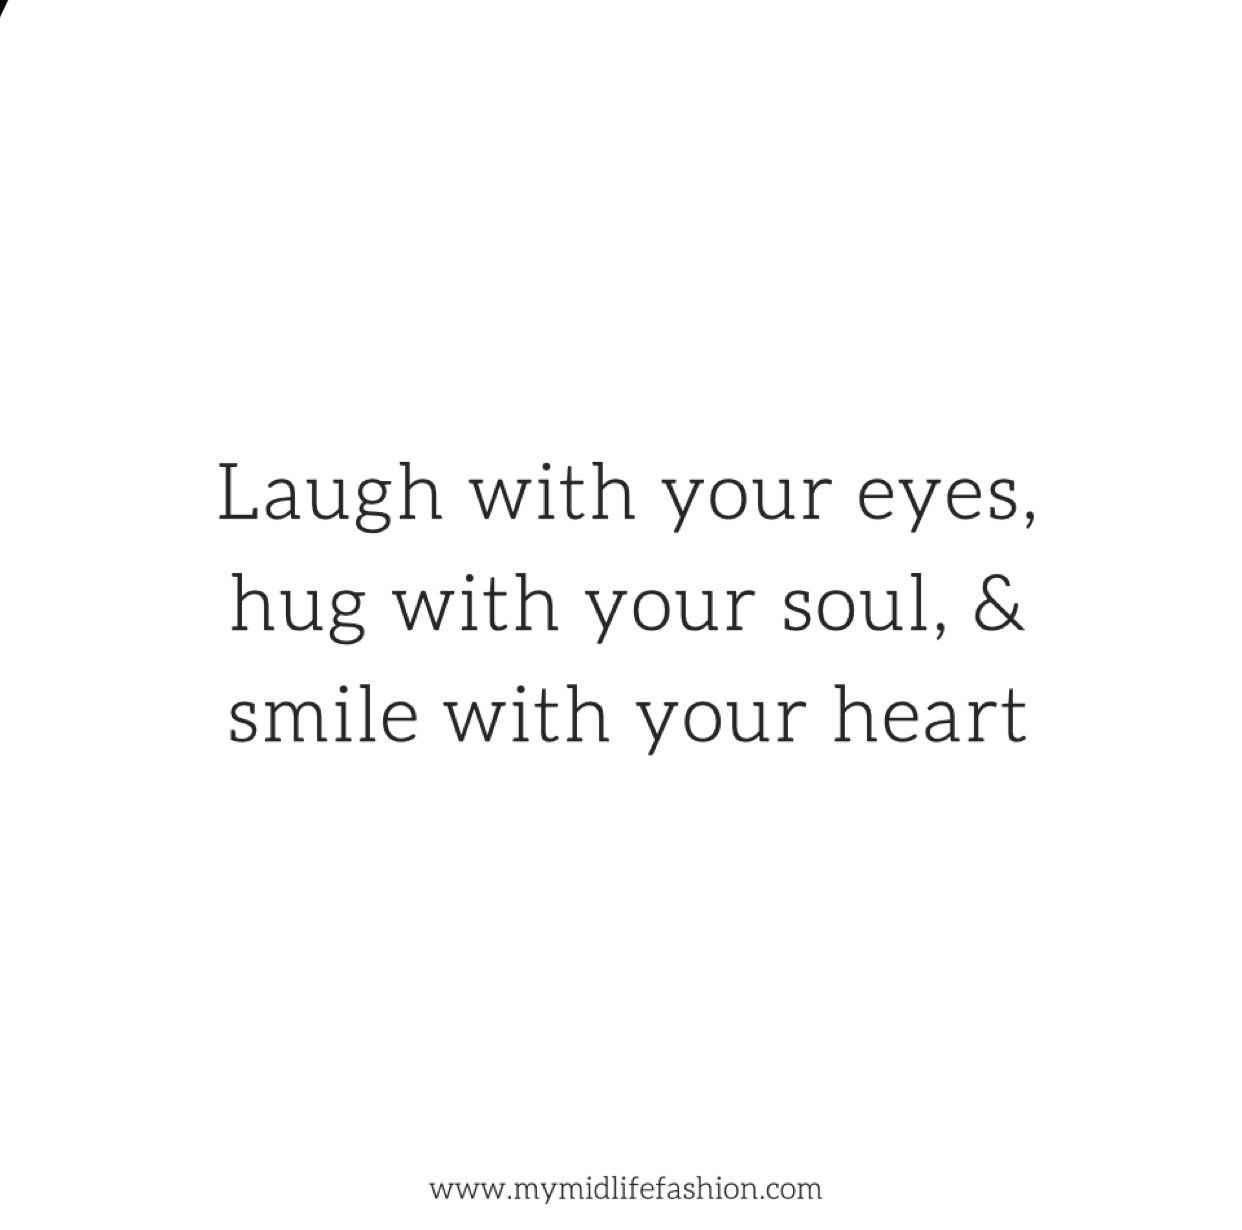 My Midlife Fashion 1000 In 2020 Laughing Quotes Smile Quotes Happy Quotes Smile